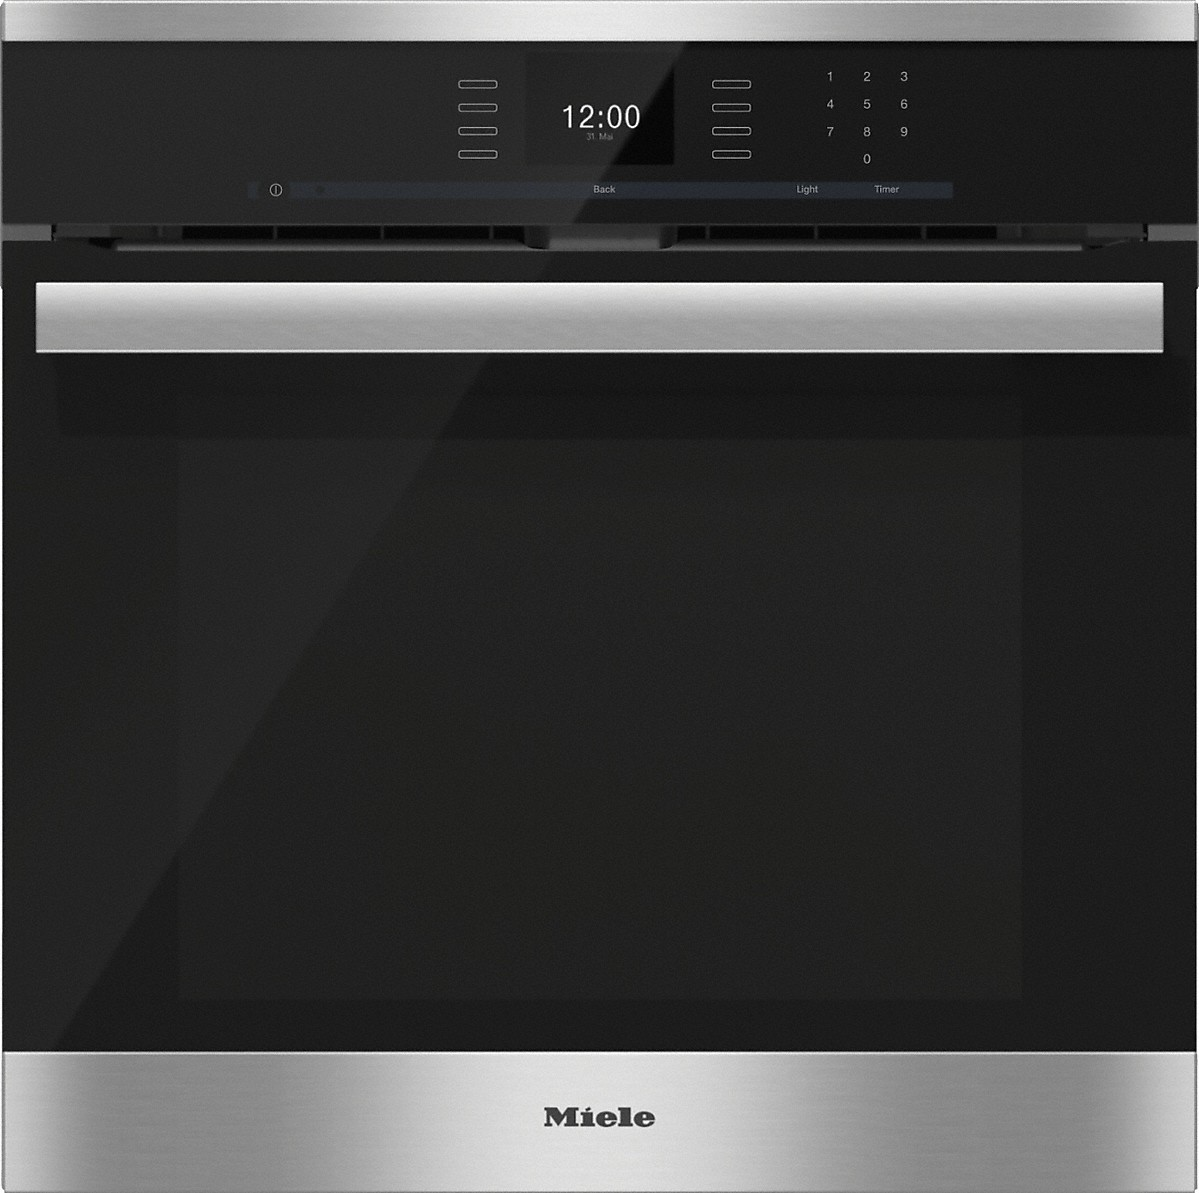 miele h 6660 bp am 24 inch convection oven. Black Bedroom Furniture Sets. Home Design Ideas